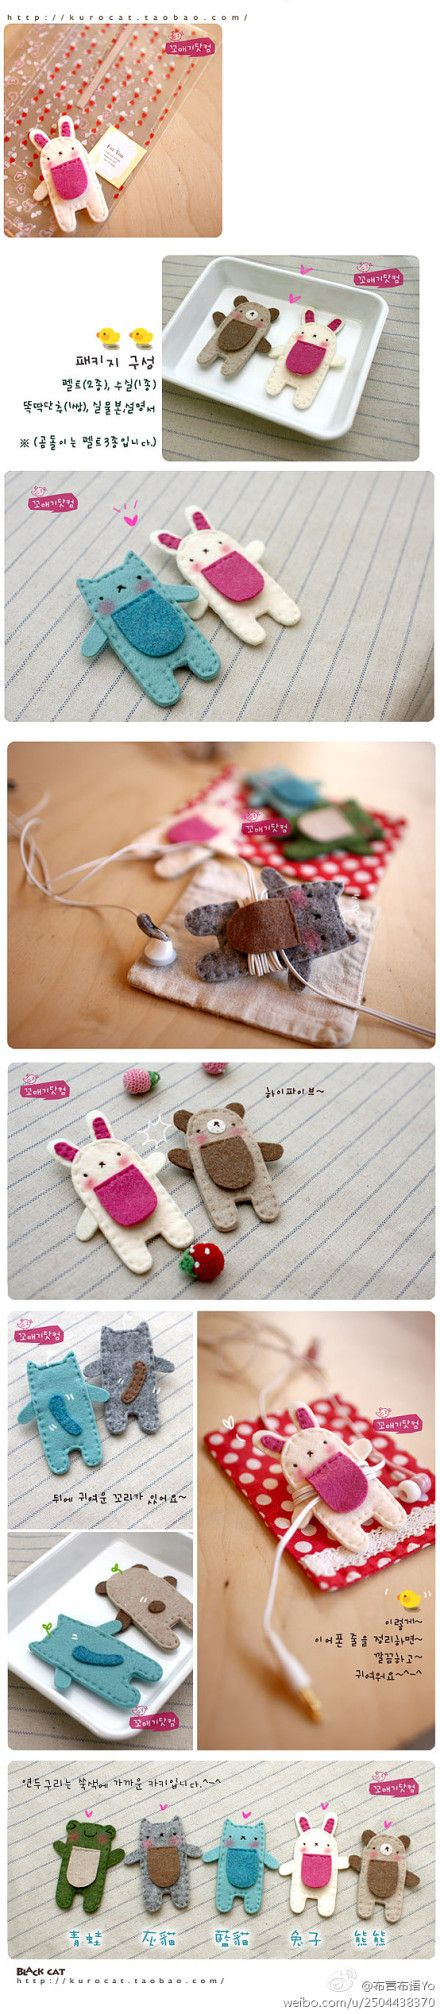 ear bud clips- They hold your ear buds so they won't get tangled. Too cute!